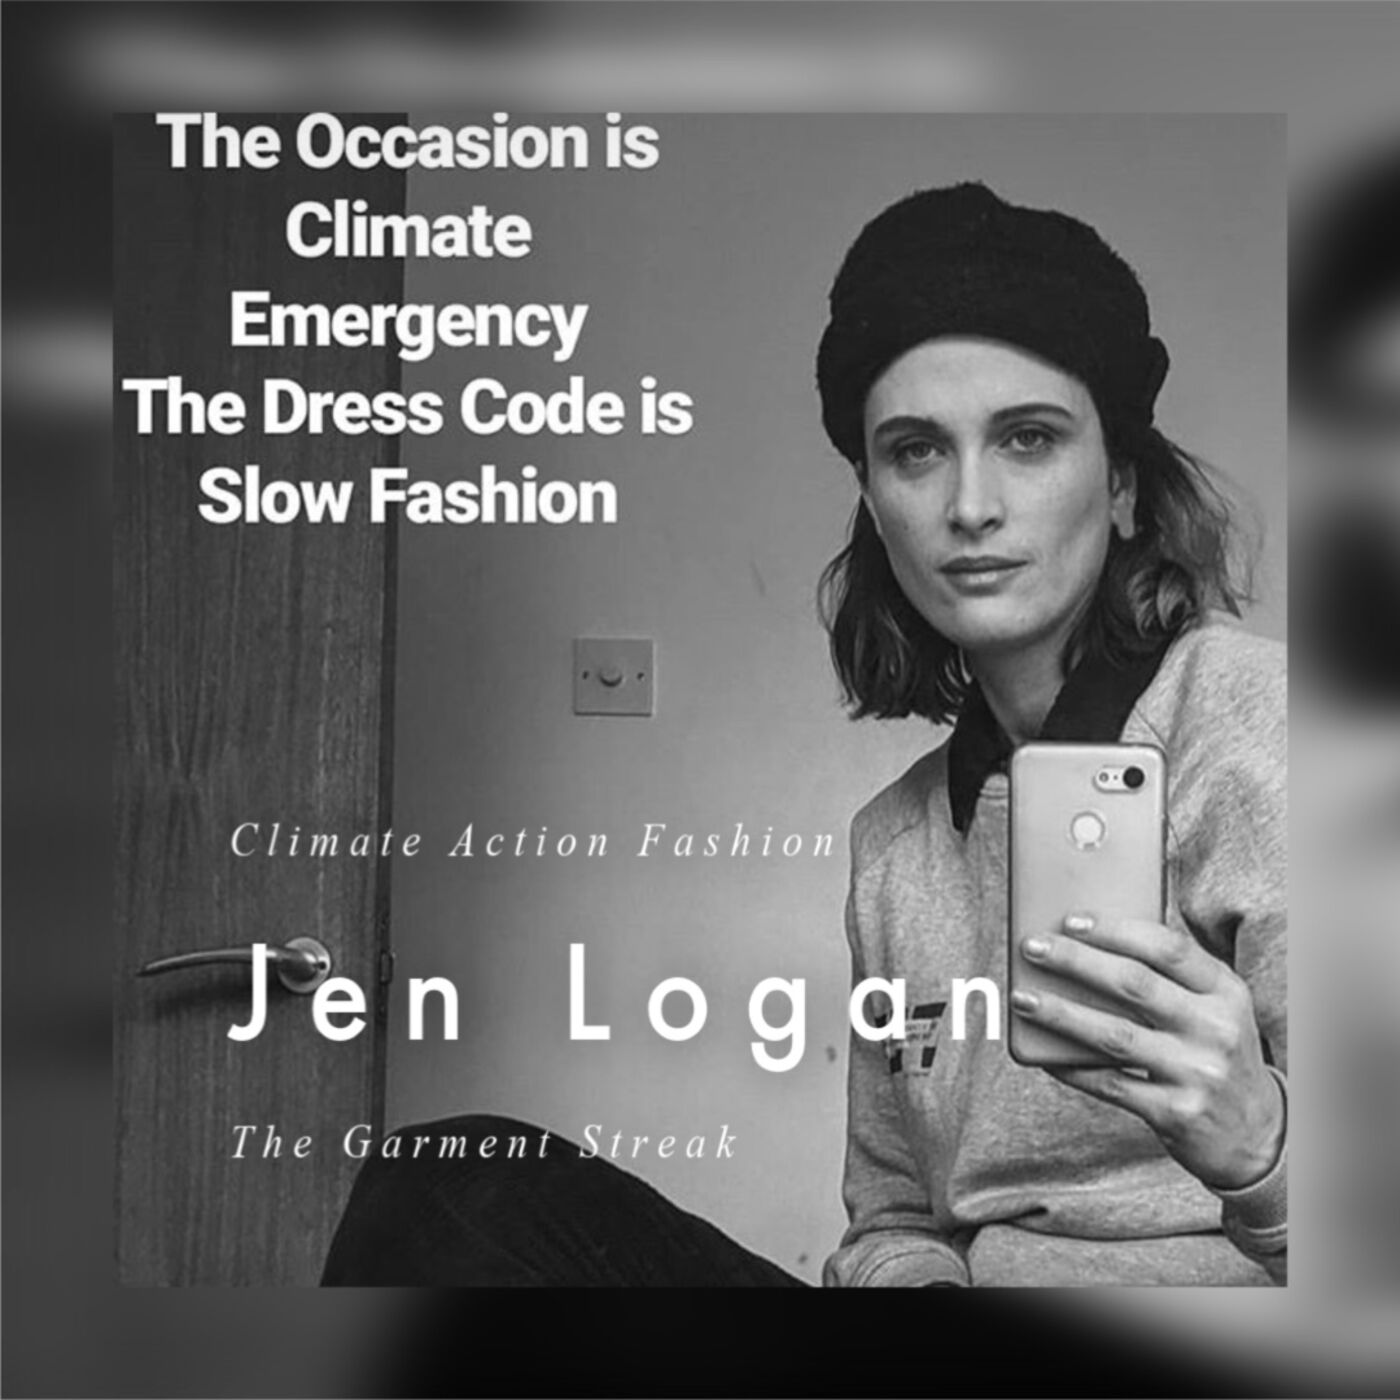 Jen Logan from 'The Garment Streak' - Slow fashion is a 'Must' for our world to survive and it does not 'Hate' style